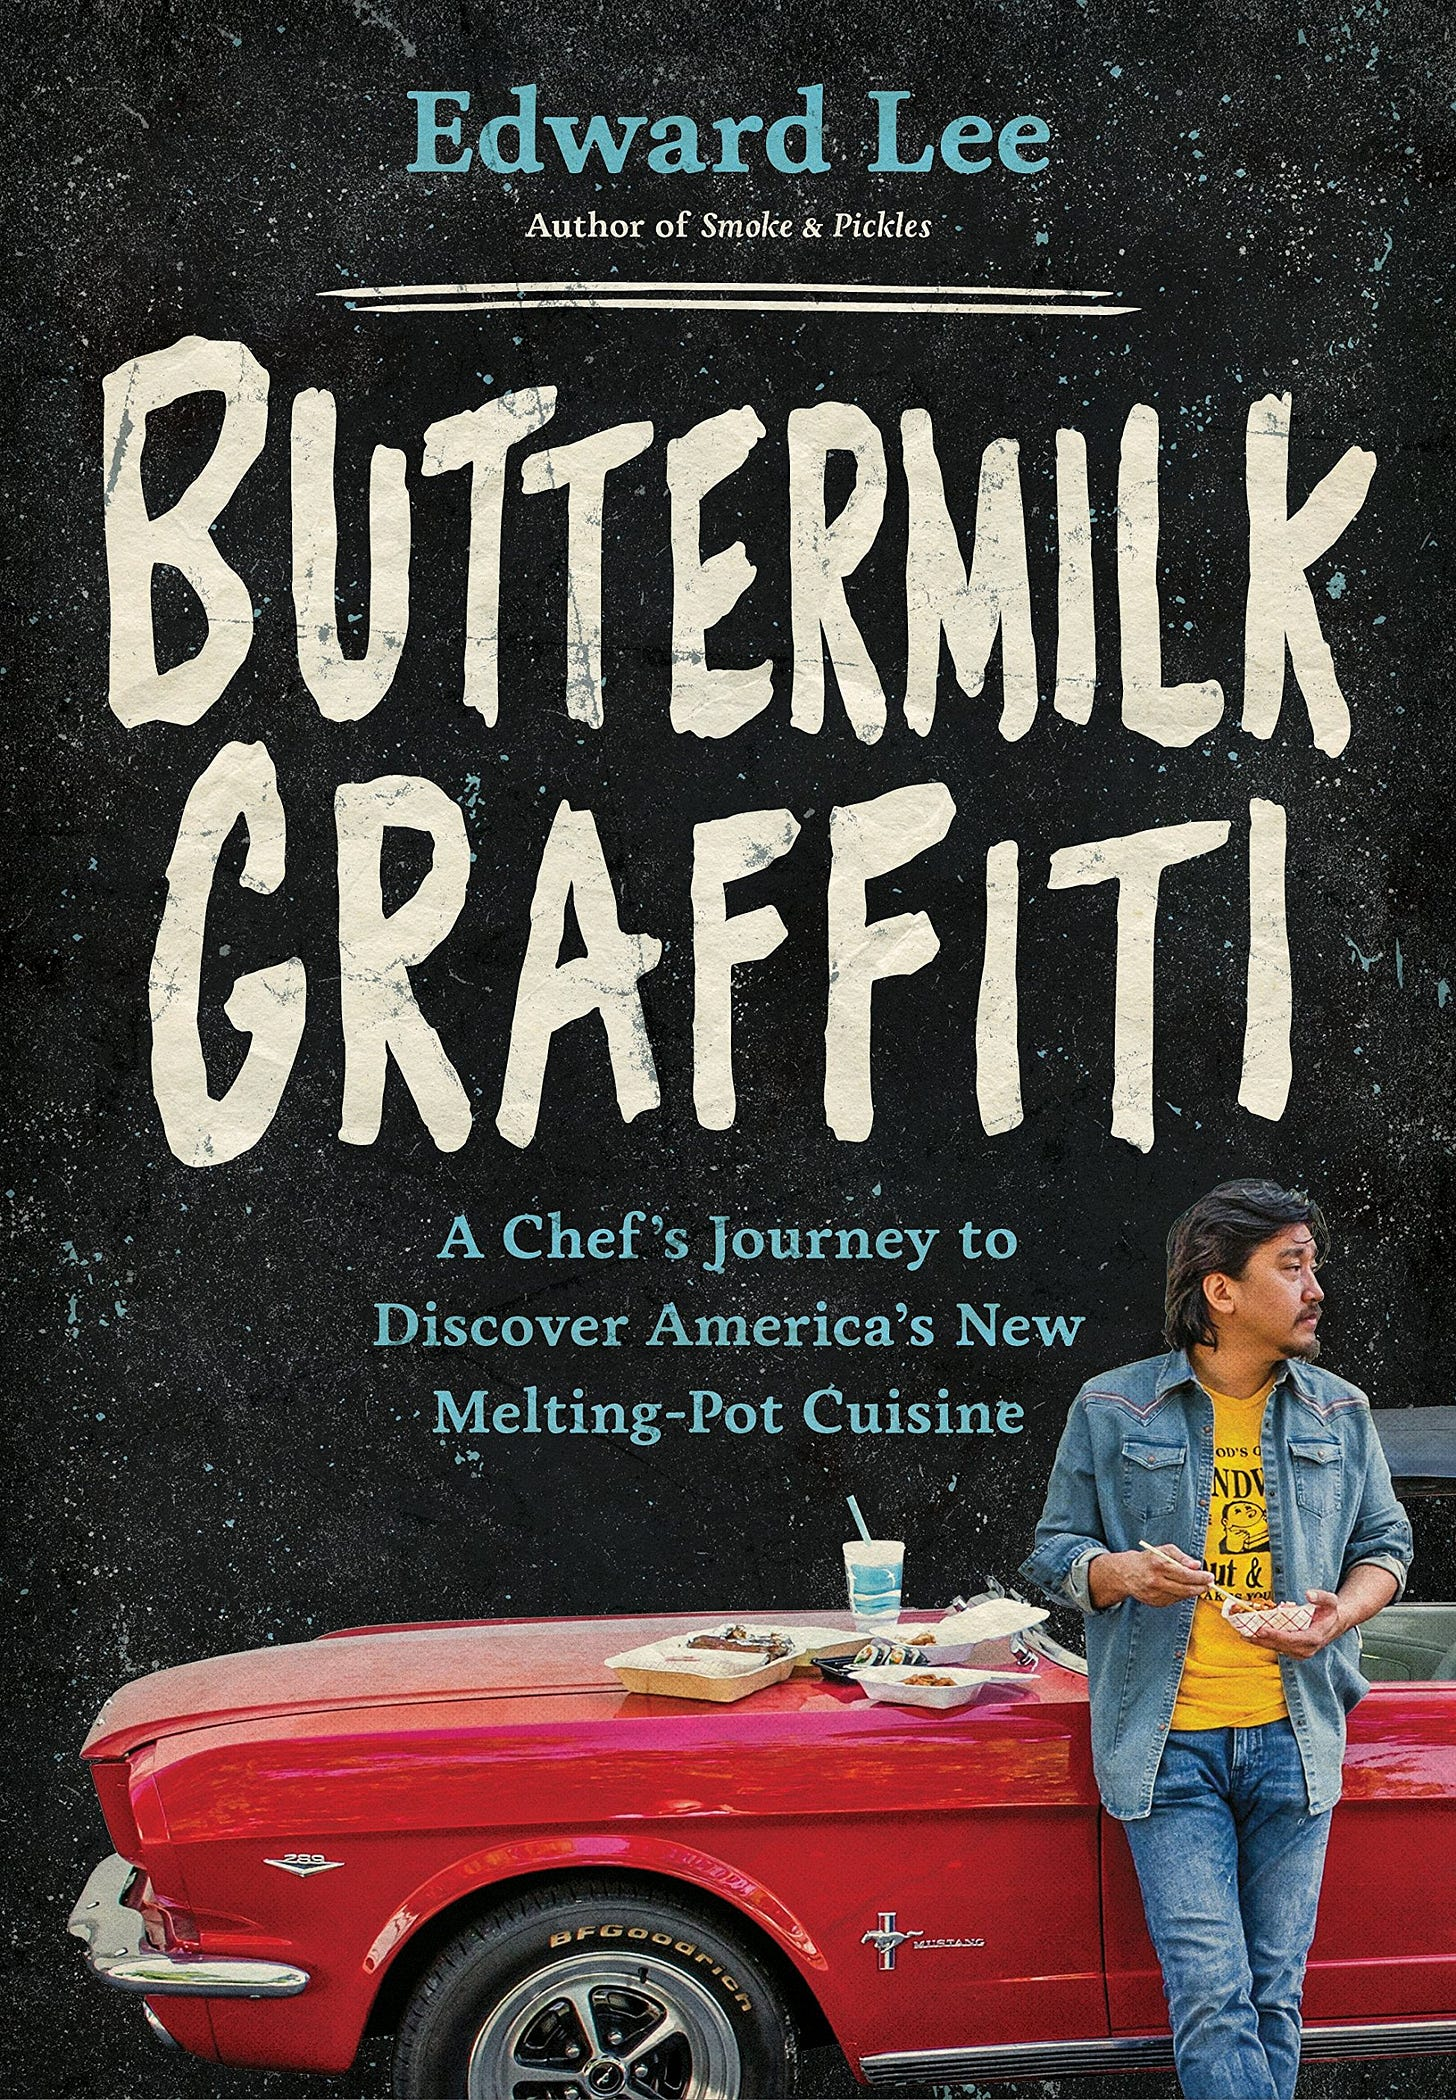 Buttermilk Graffiti: A Chef's Journey to Discover America's New ...